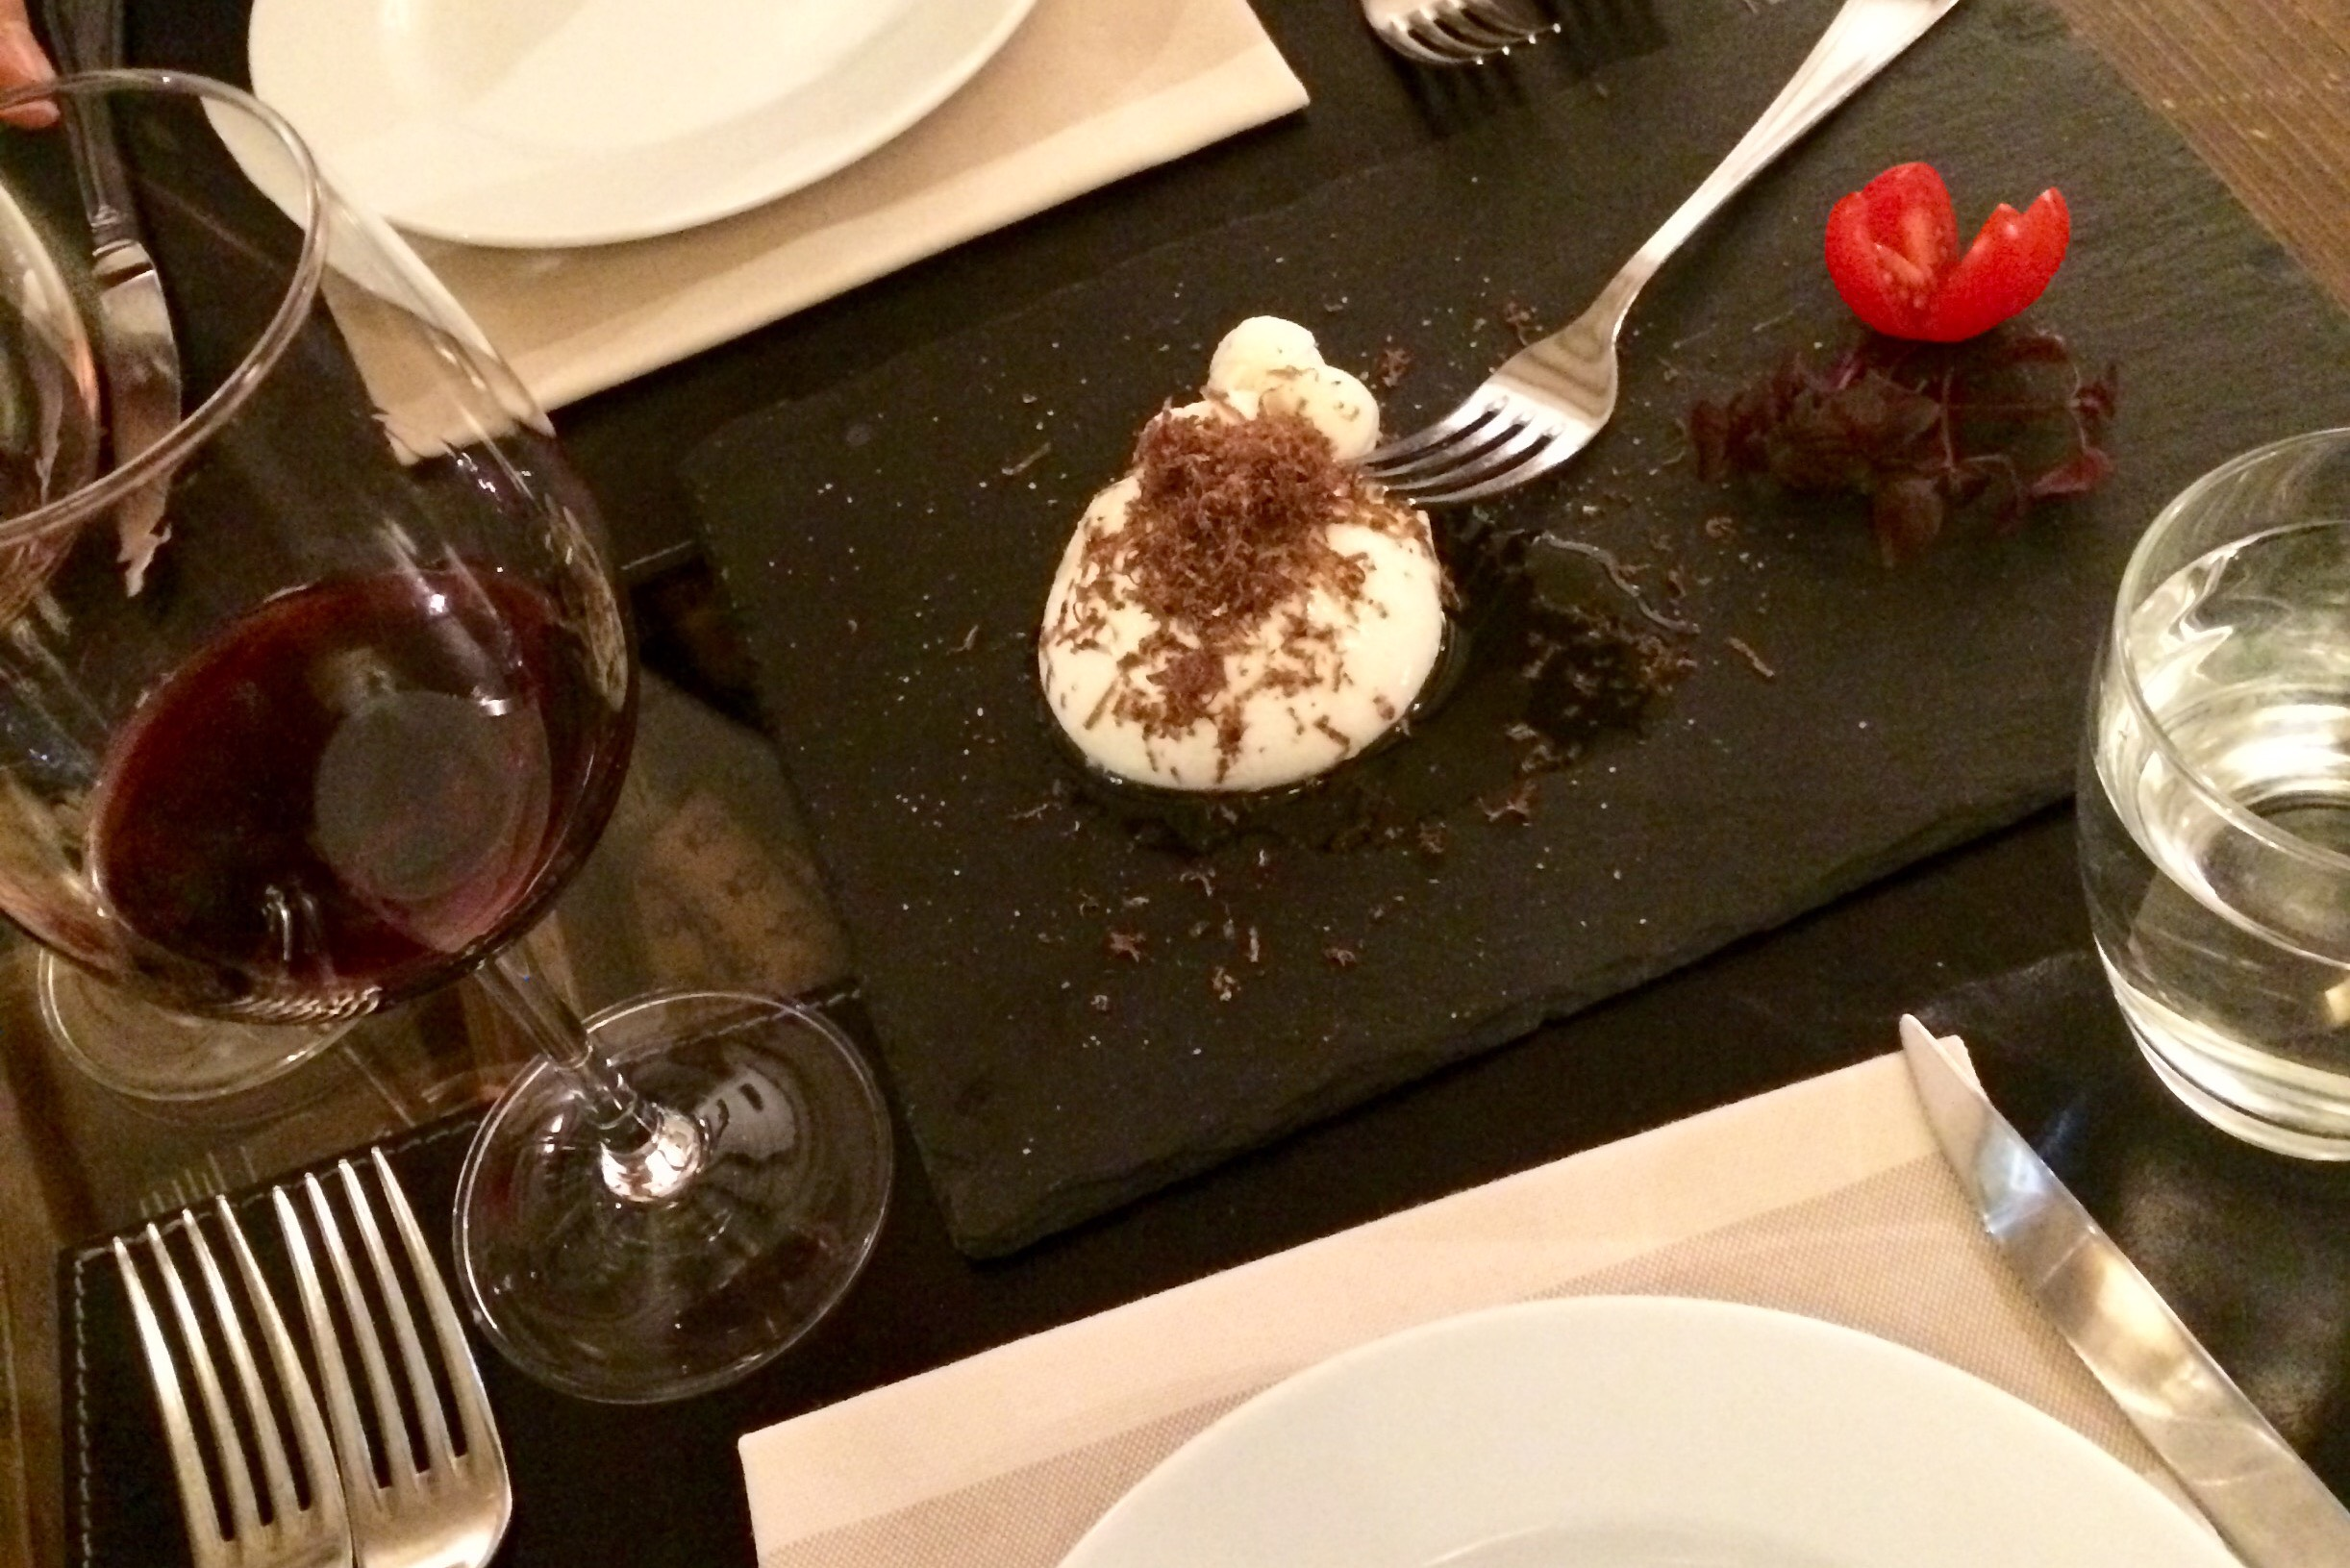 Burrata with shaved truffle.